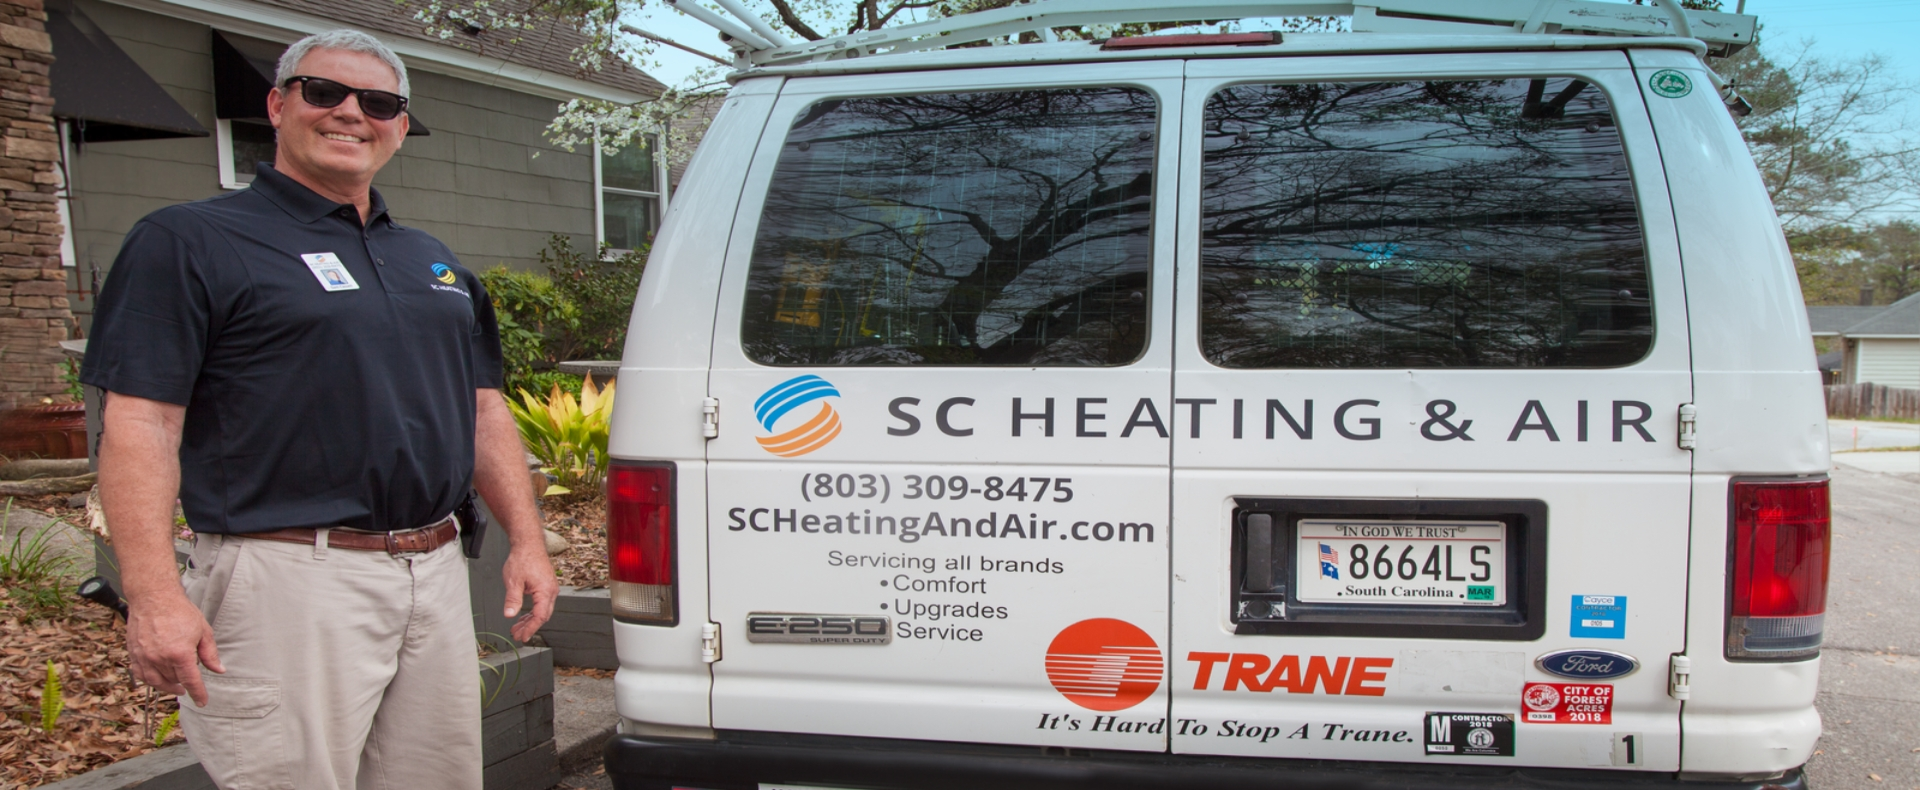 sam-cassell-heating-and-air-columbia-sc